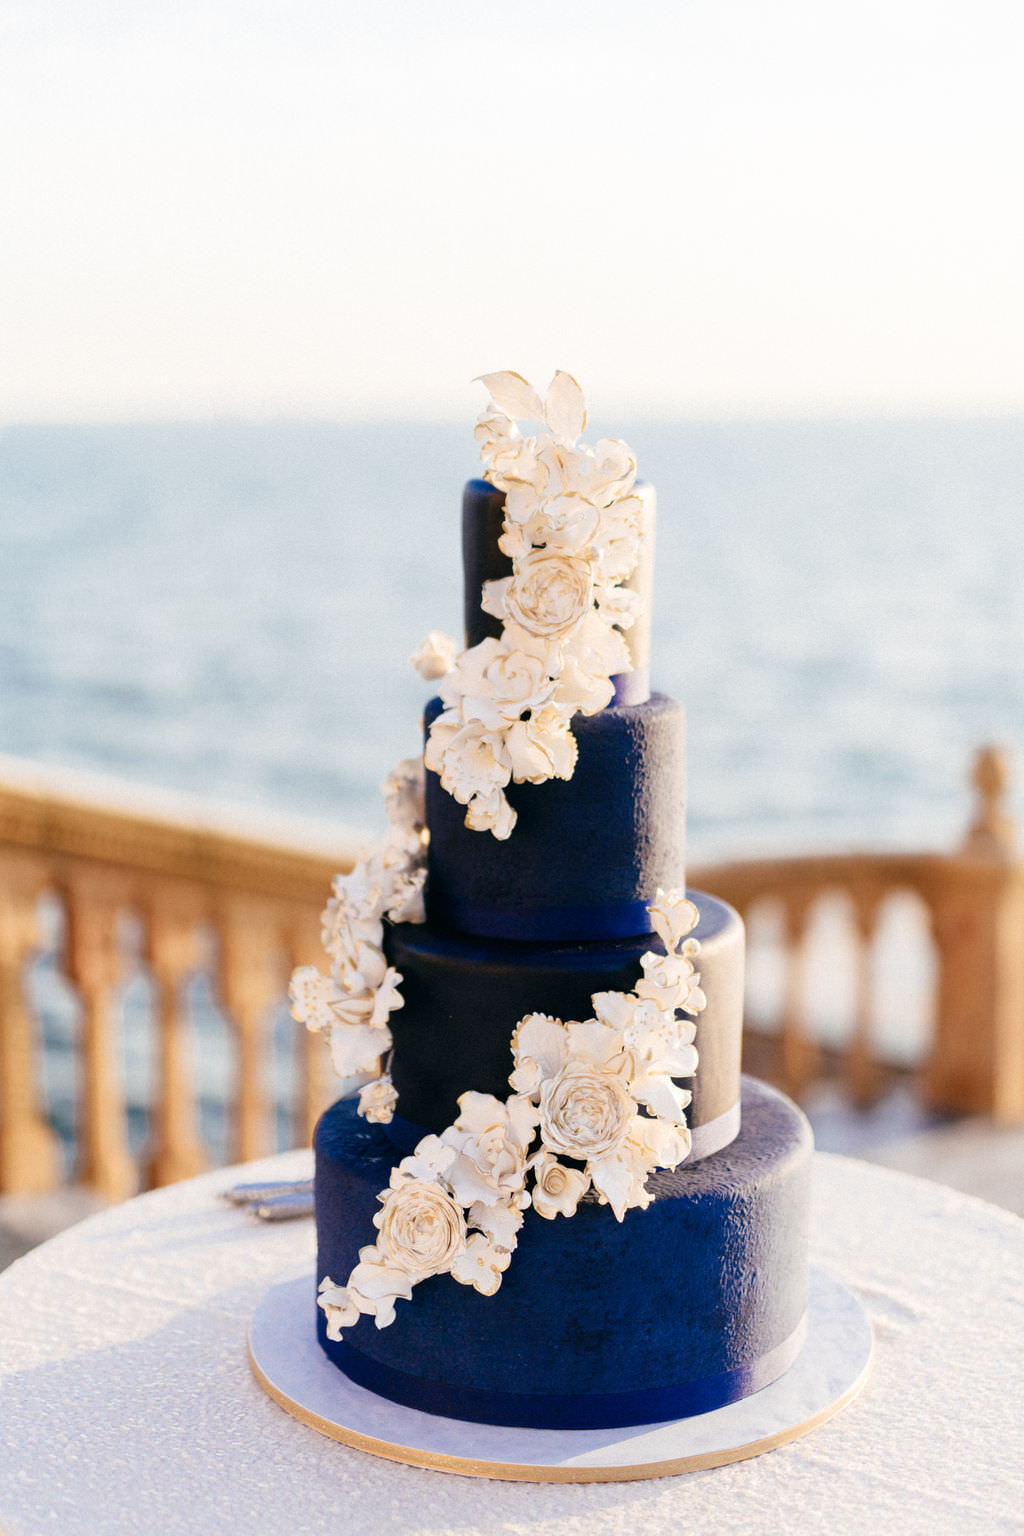 INSTAGRAM Four Tier Navy Blue Wedding Cake with Cascading White and Gold Sugar Flowers